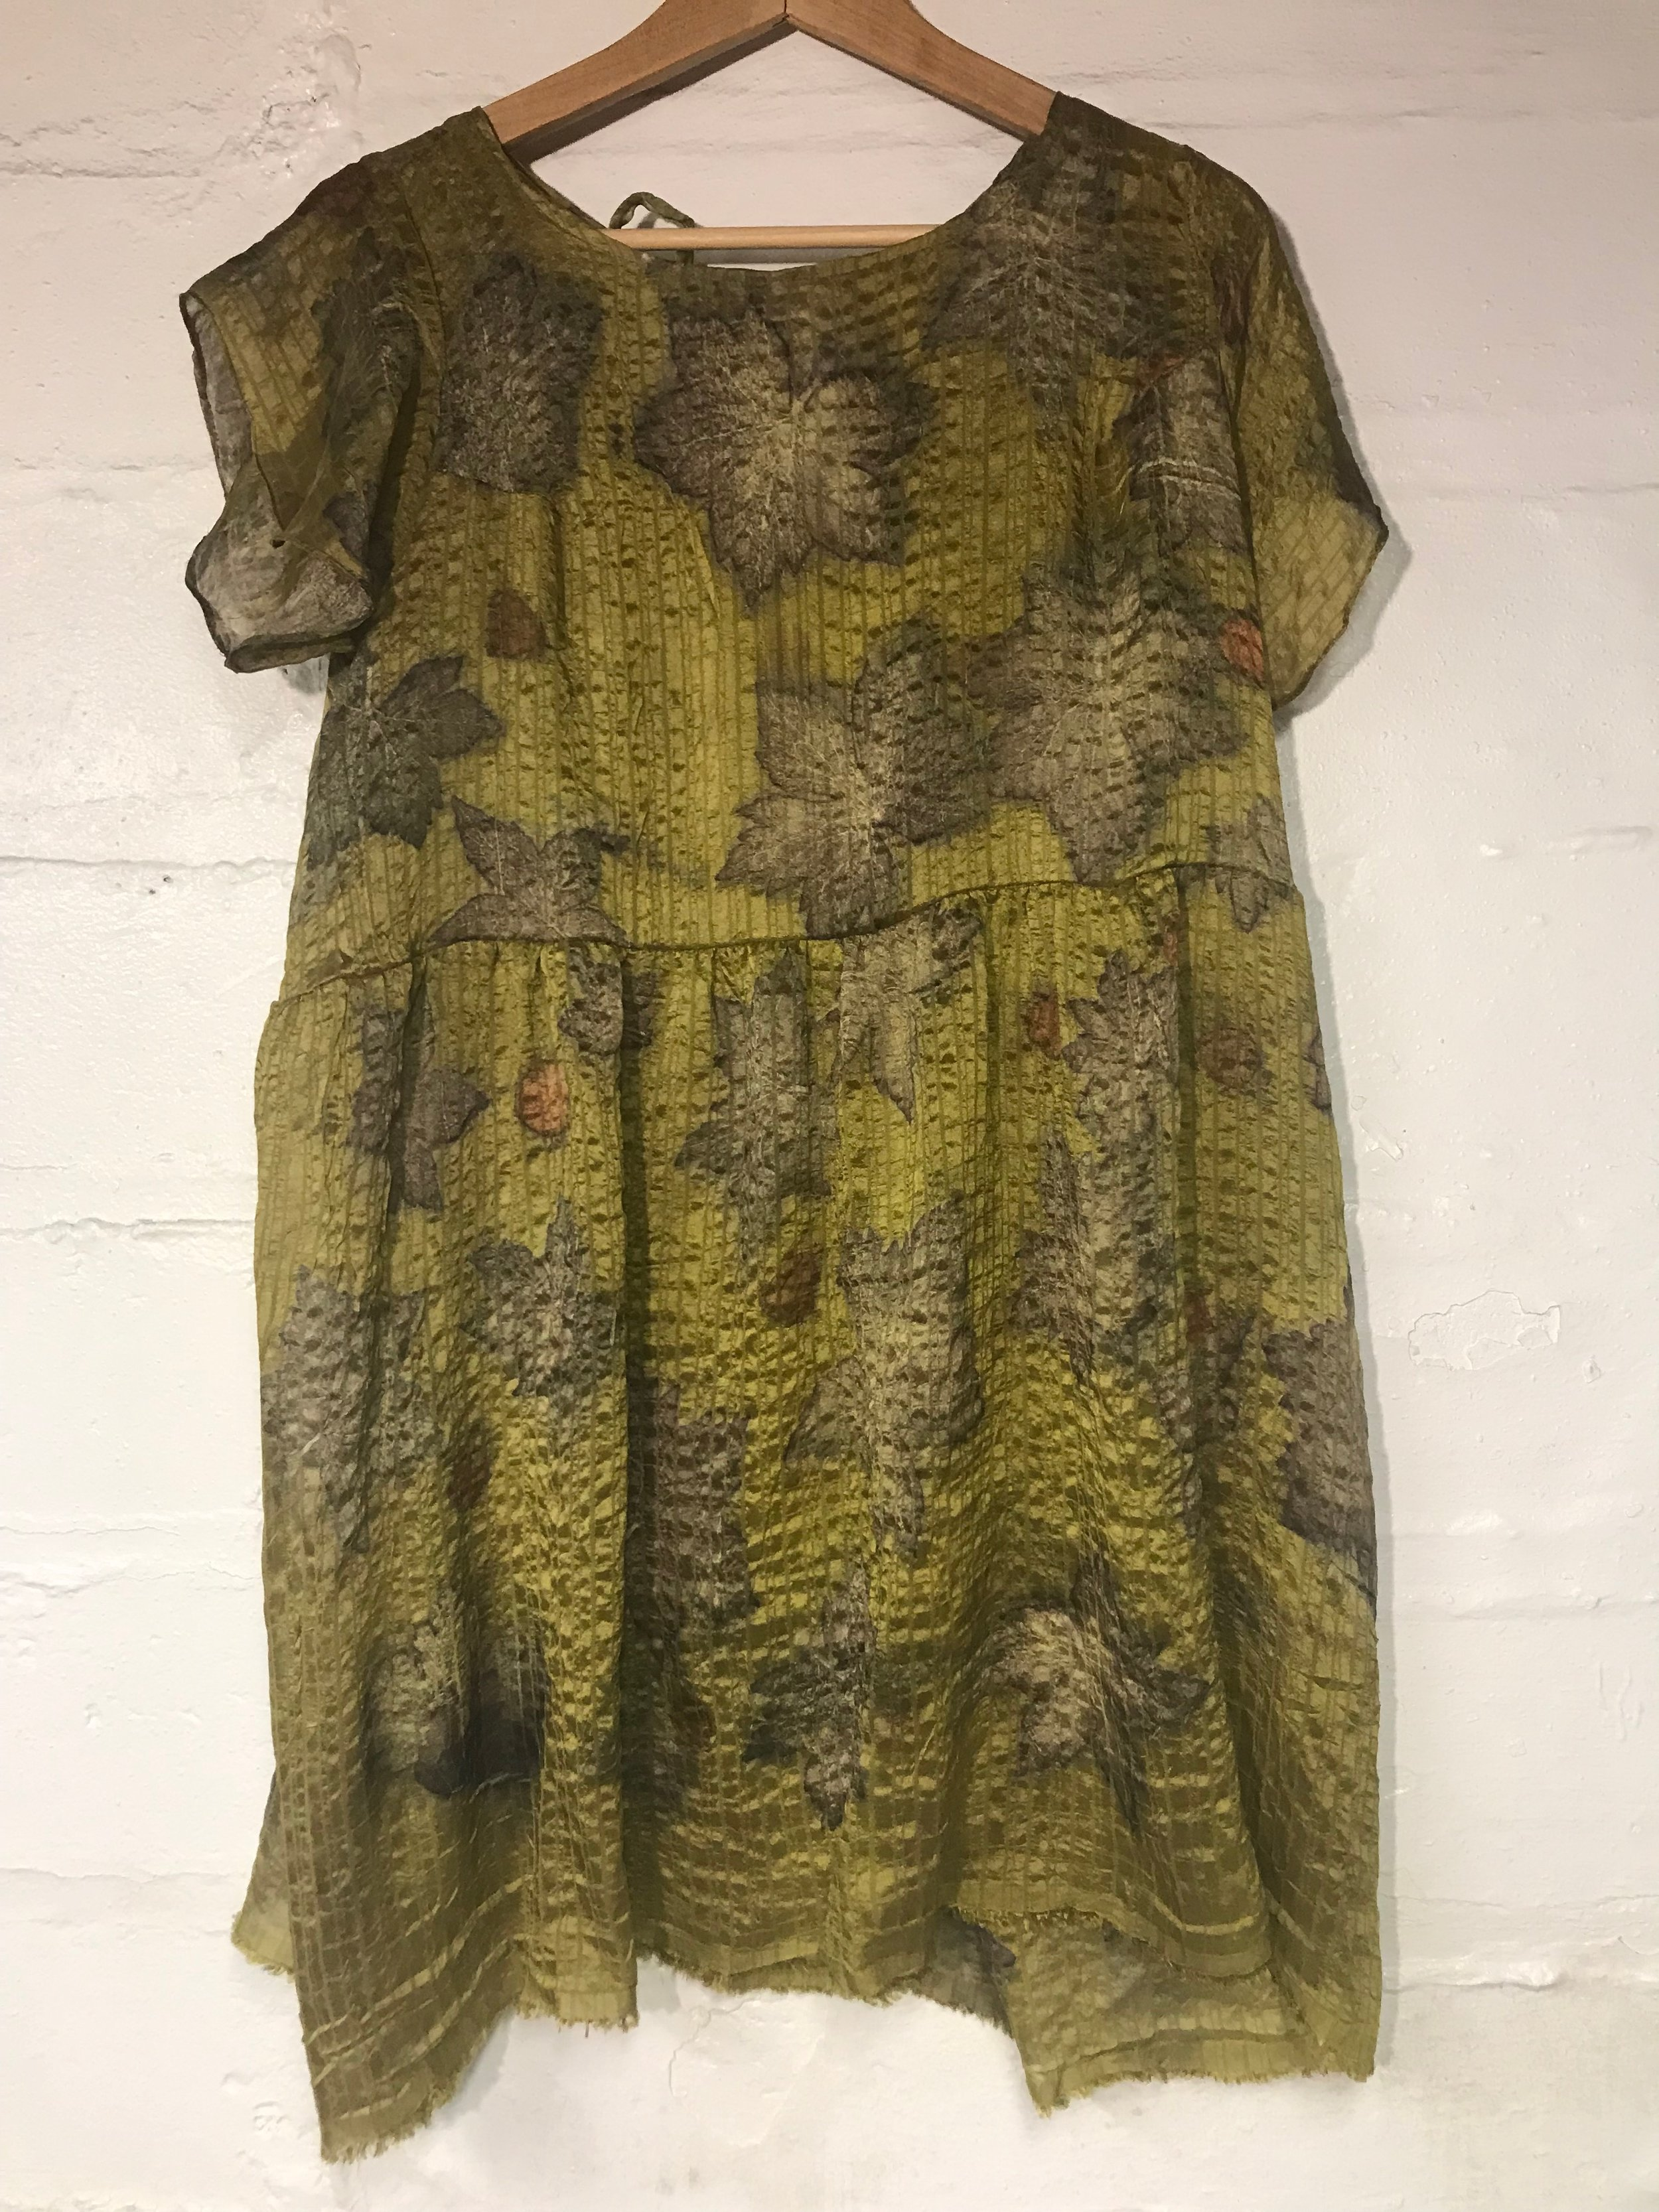 Silk dyed in orange osage and printed with wild geranium leaves.